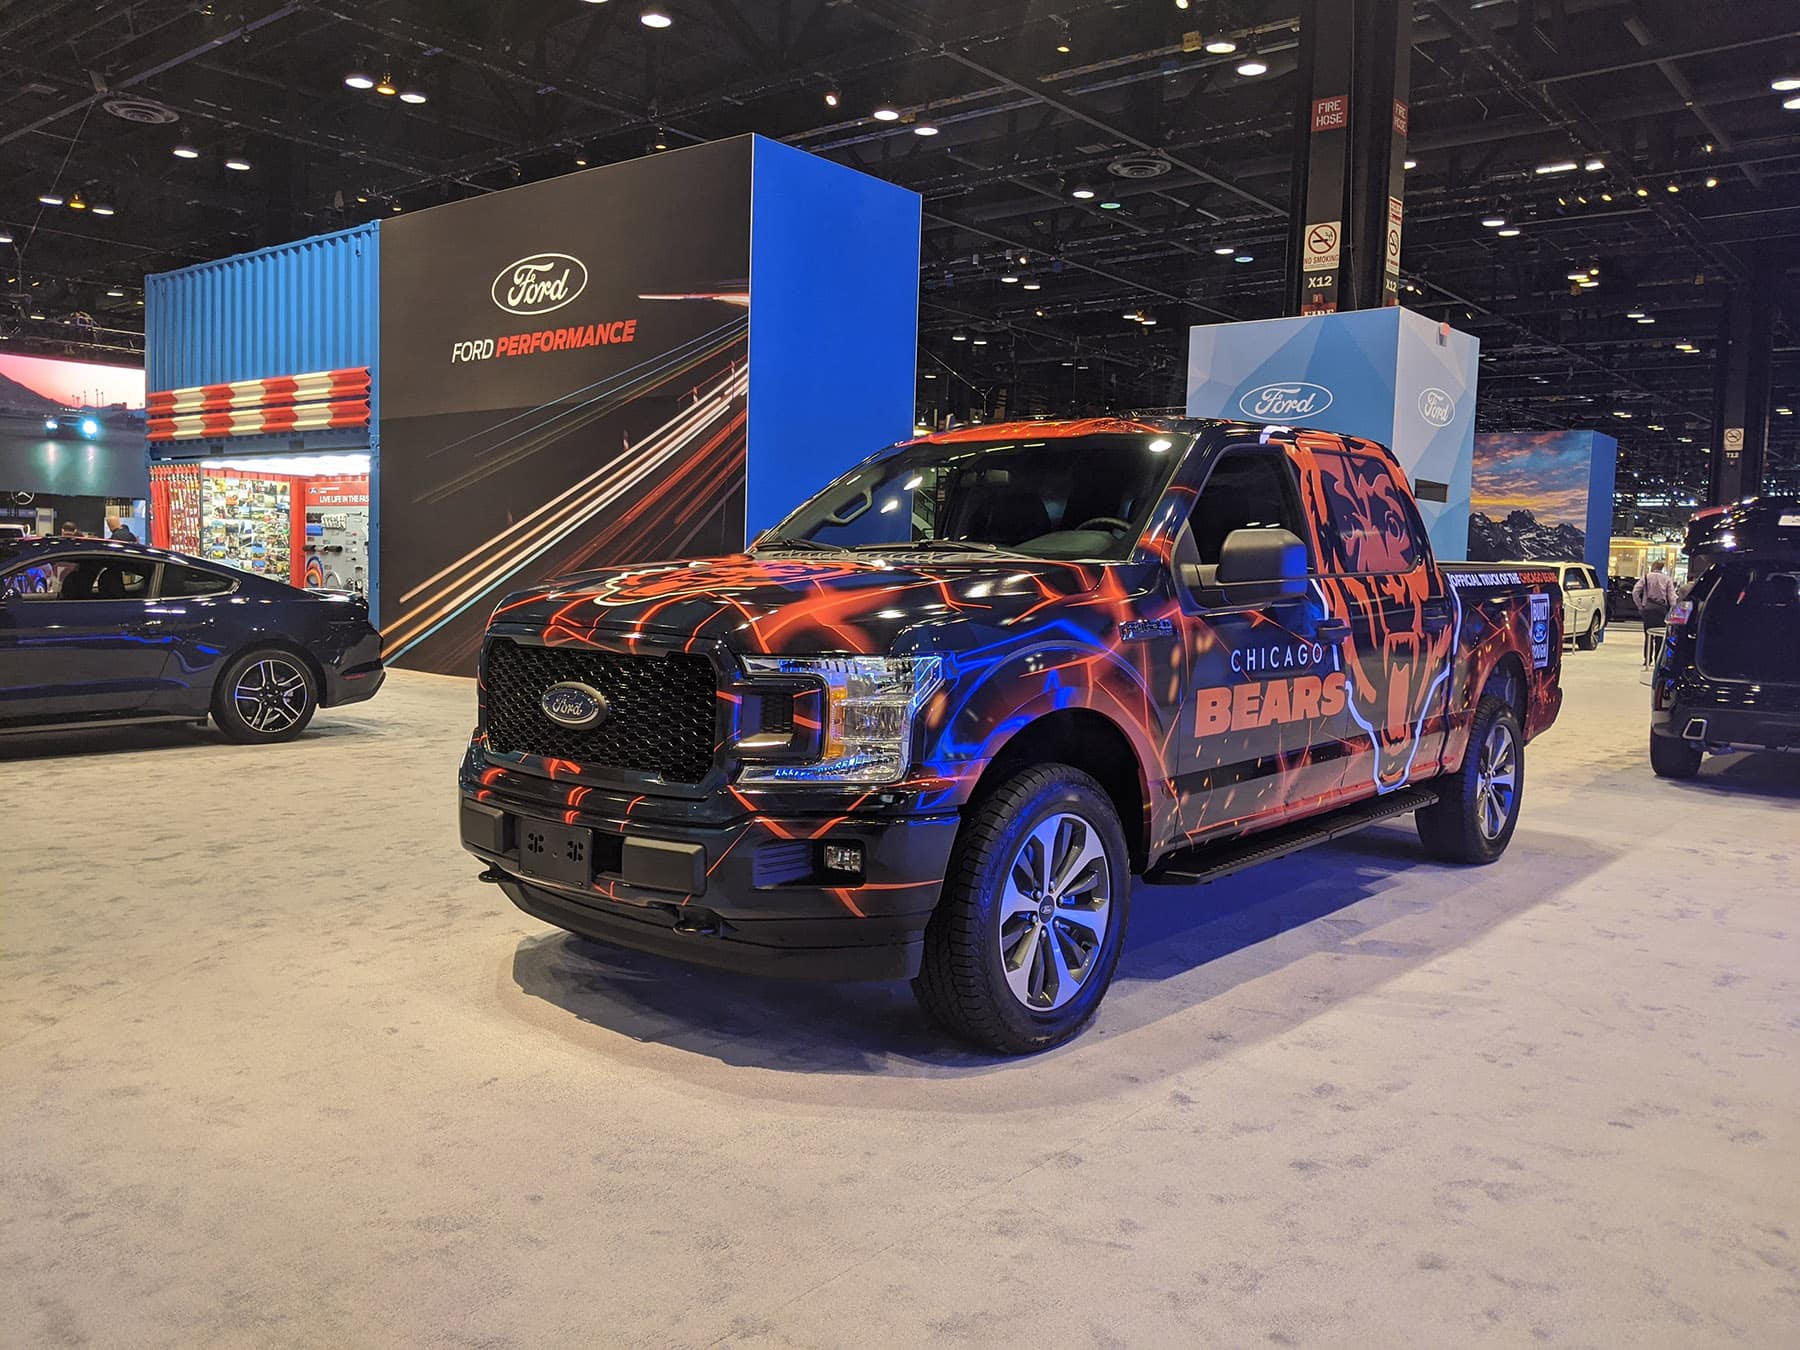 Chicago Bears Ford truck at 2020 Chicago Auto Show